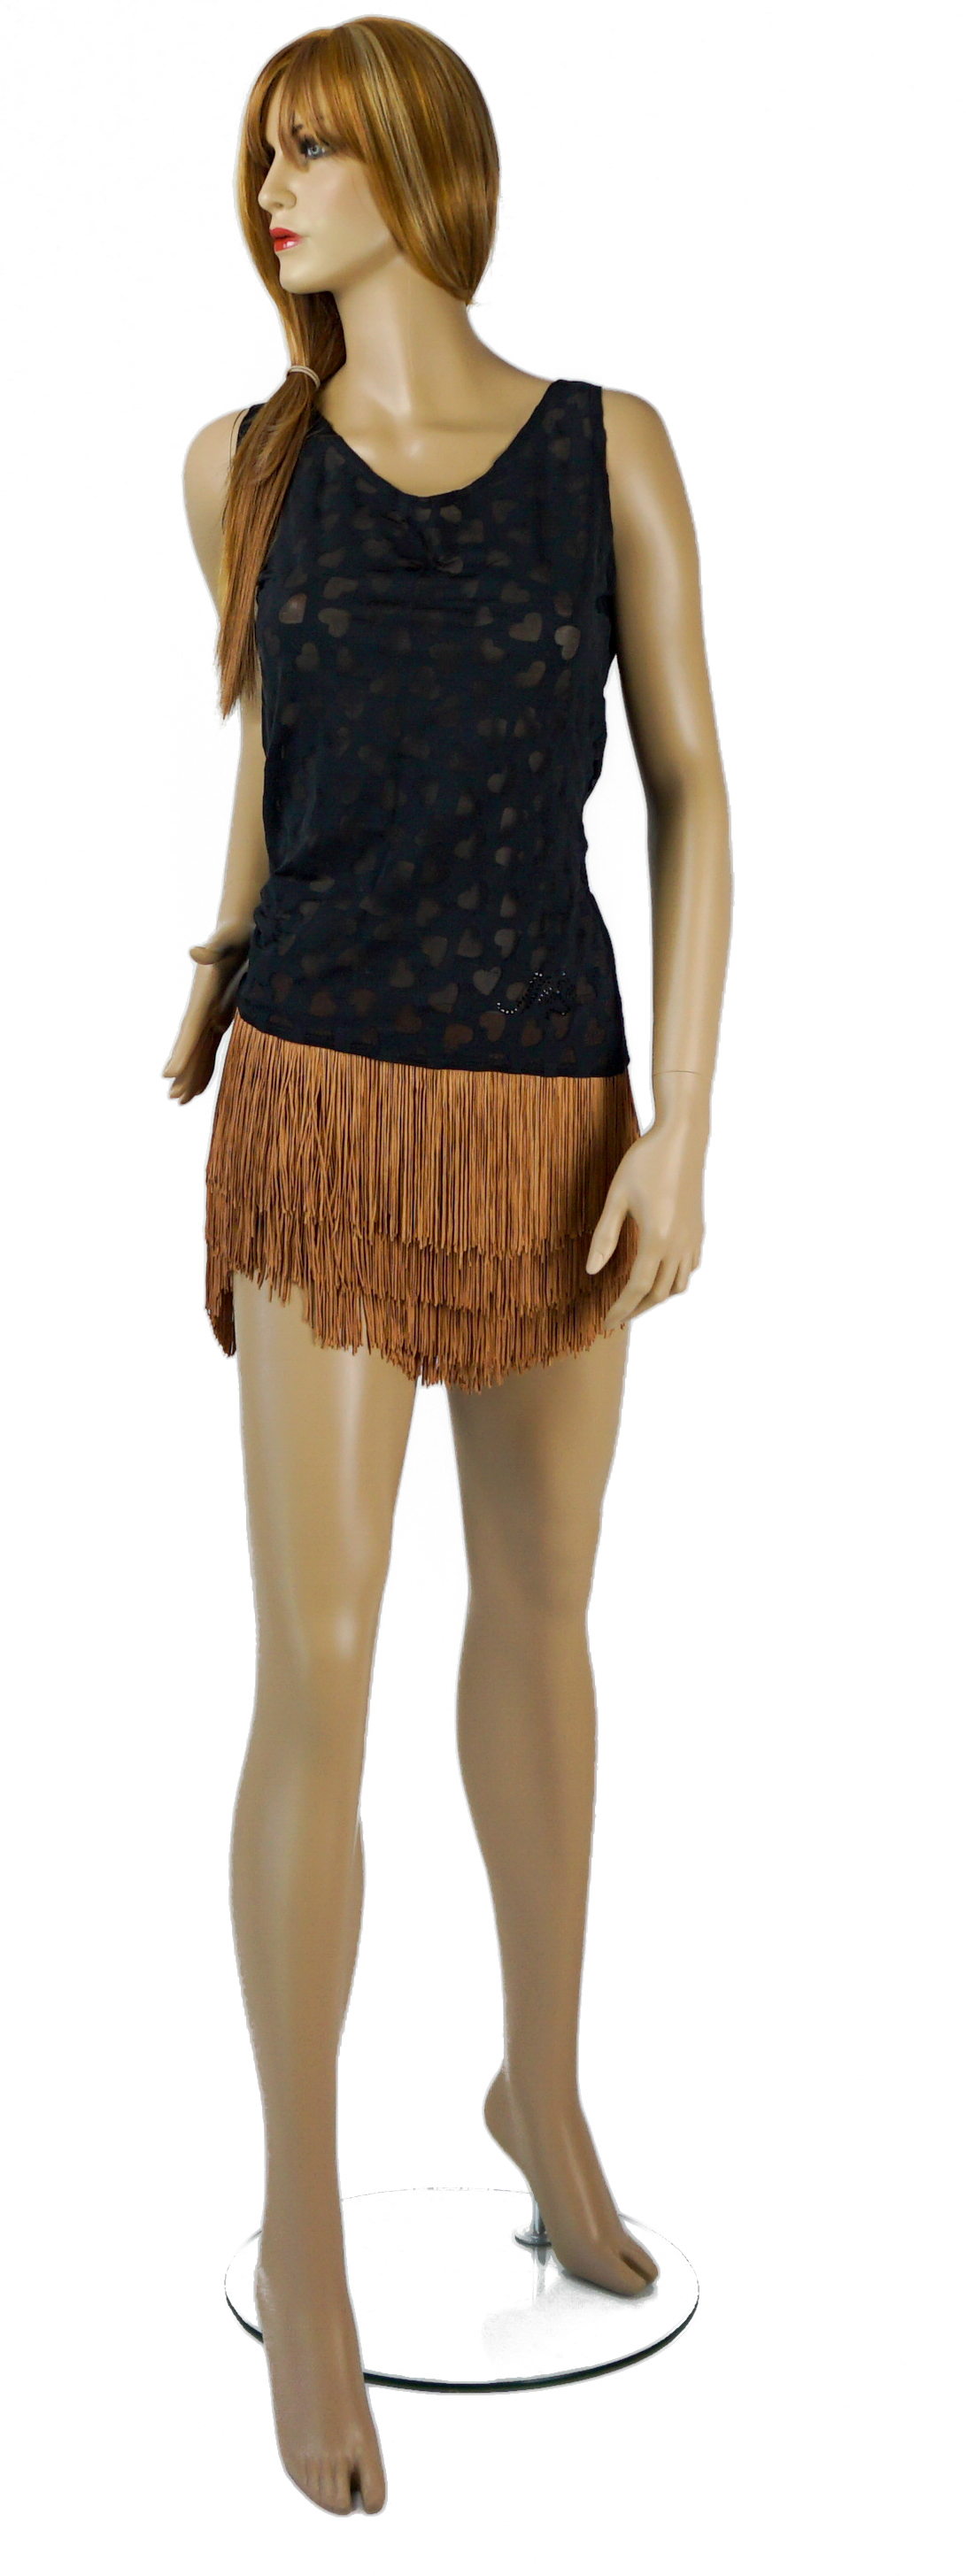 Top-$50 Fringe shorts-$170